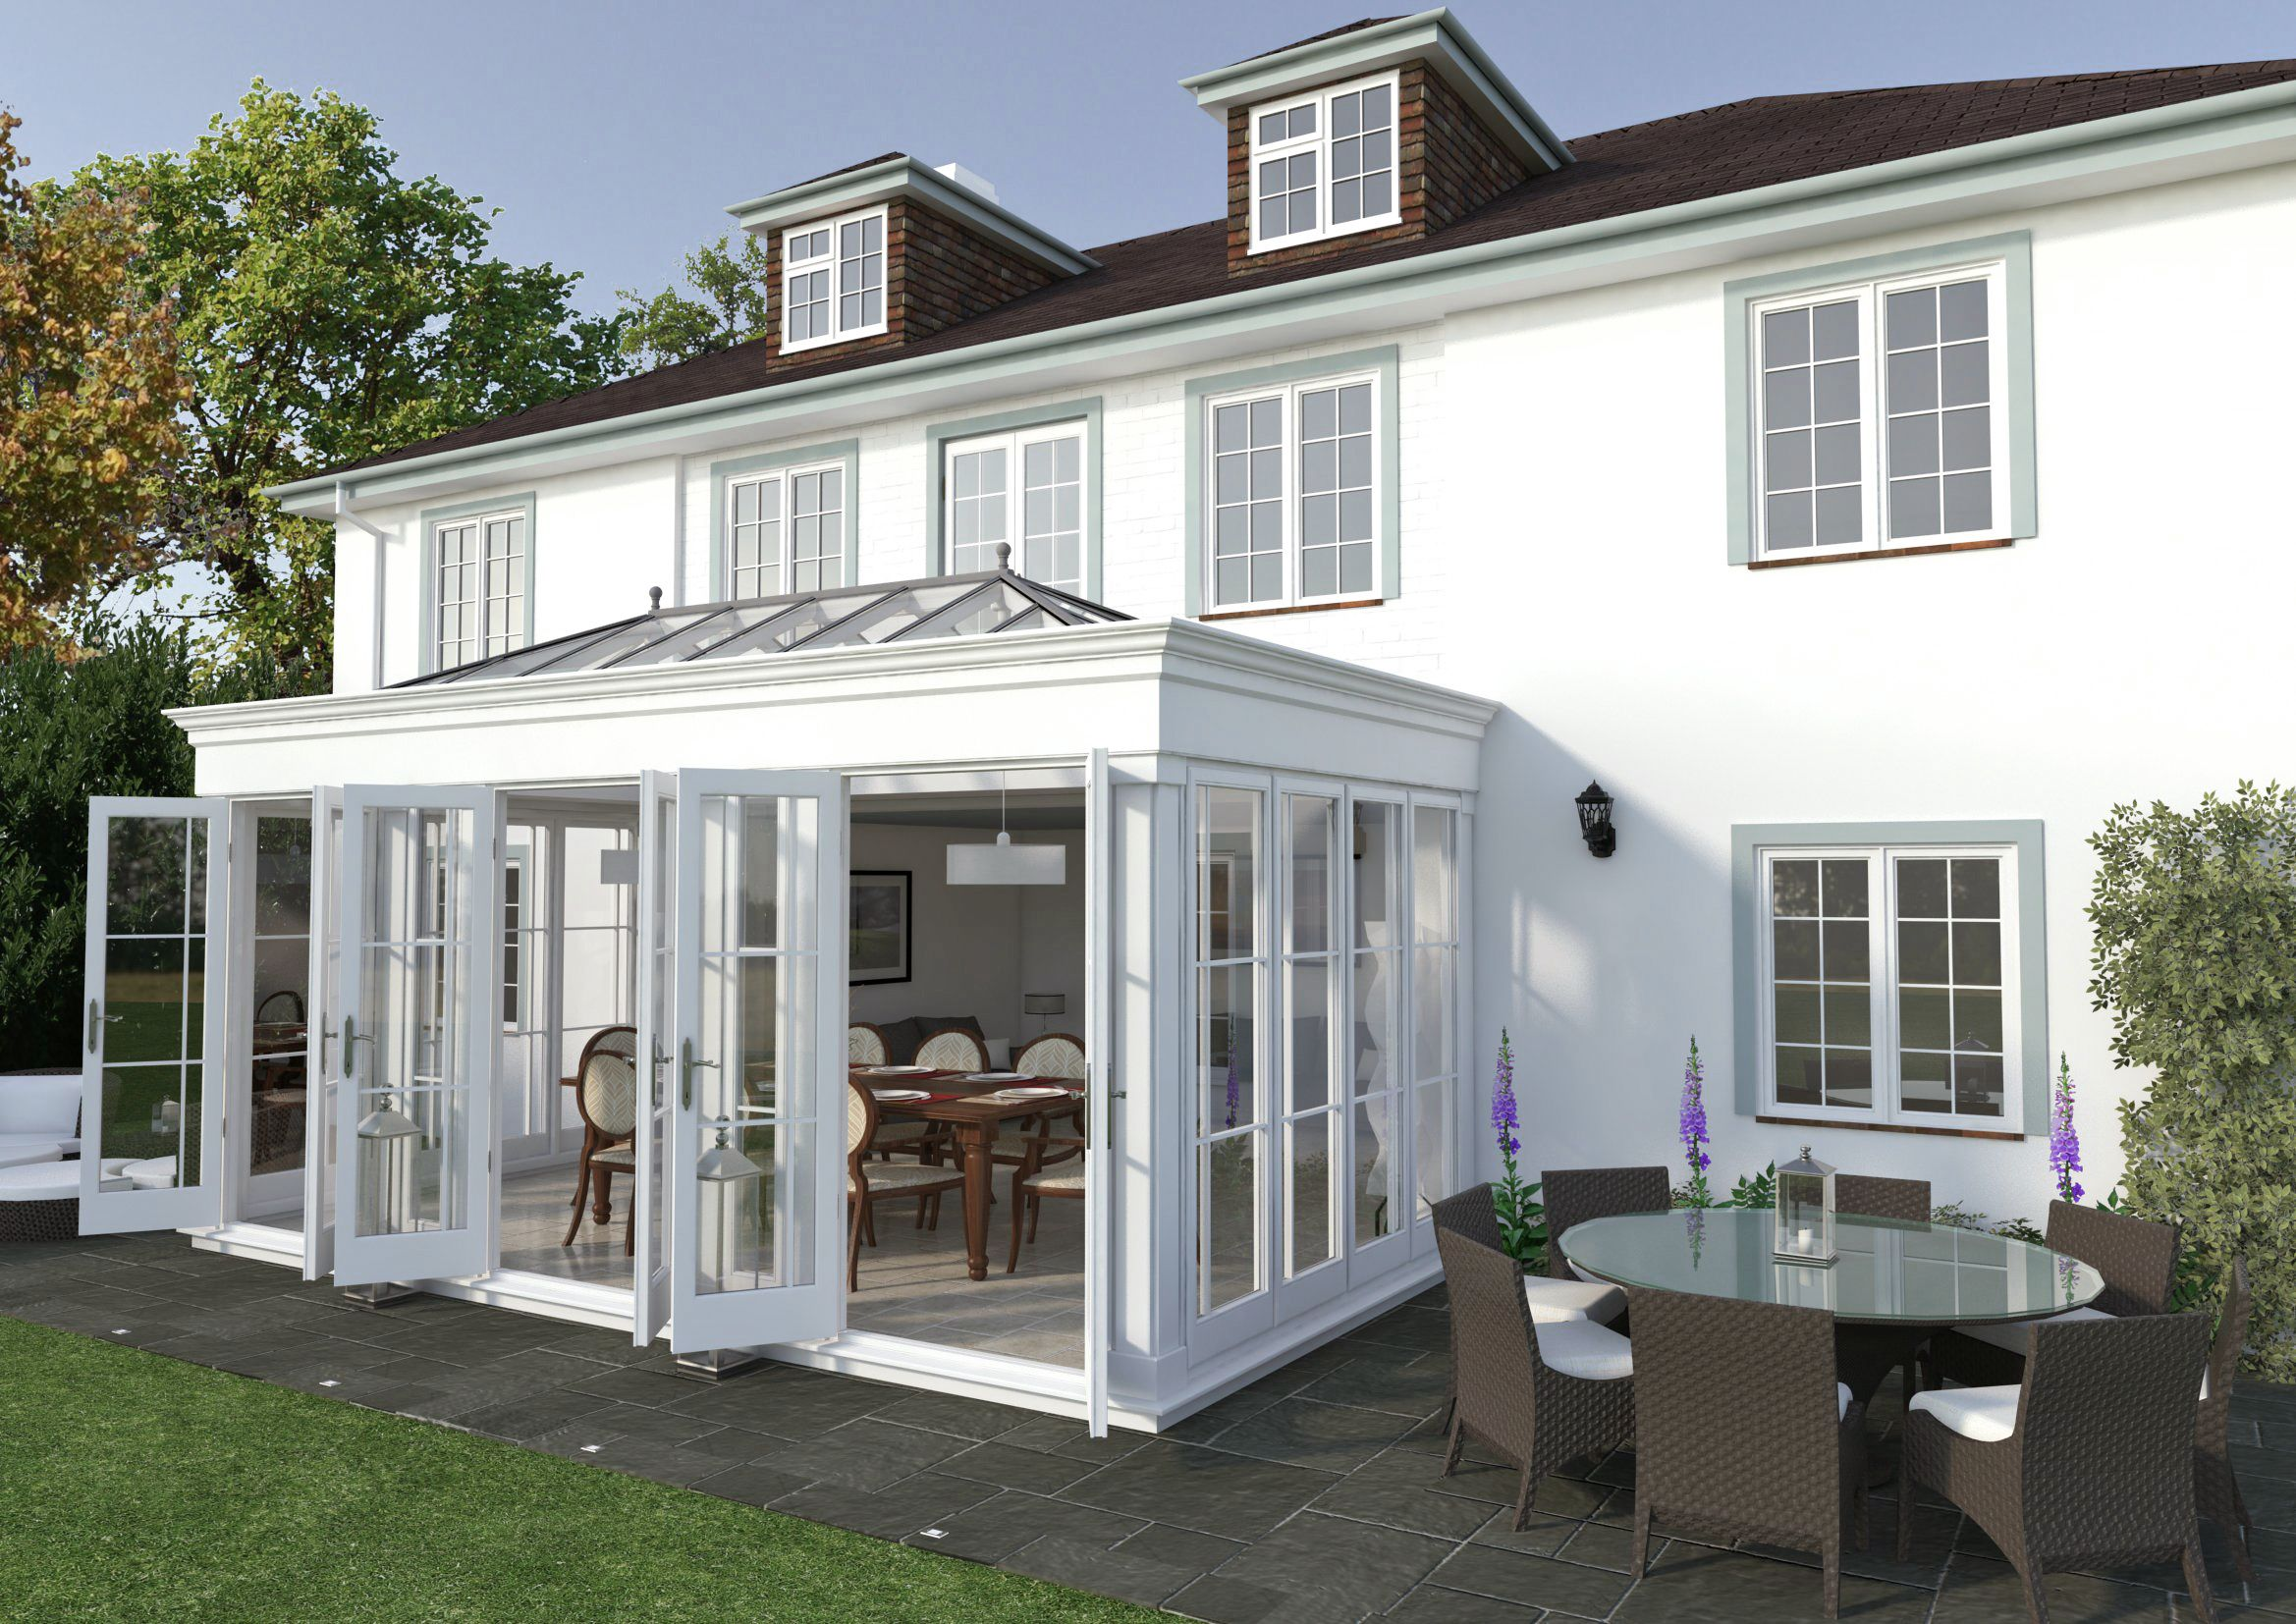 Another Beautiful Orangery Constructed At Knighton S Court